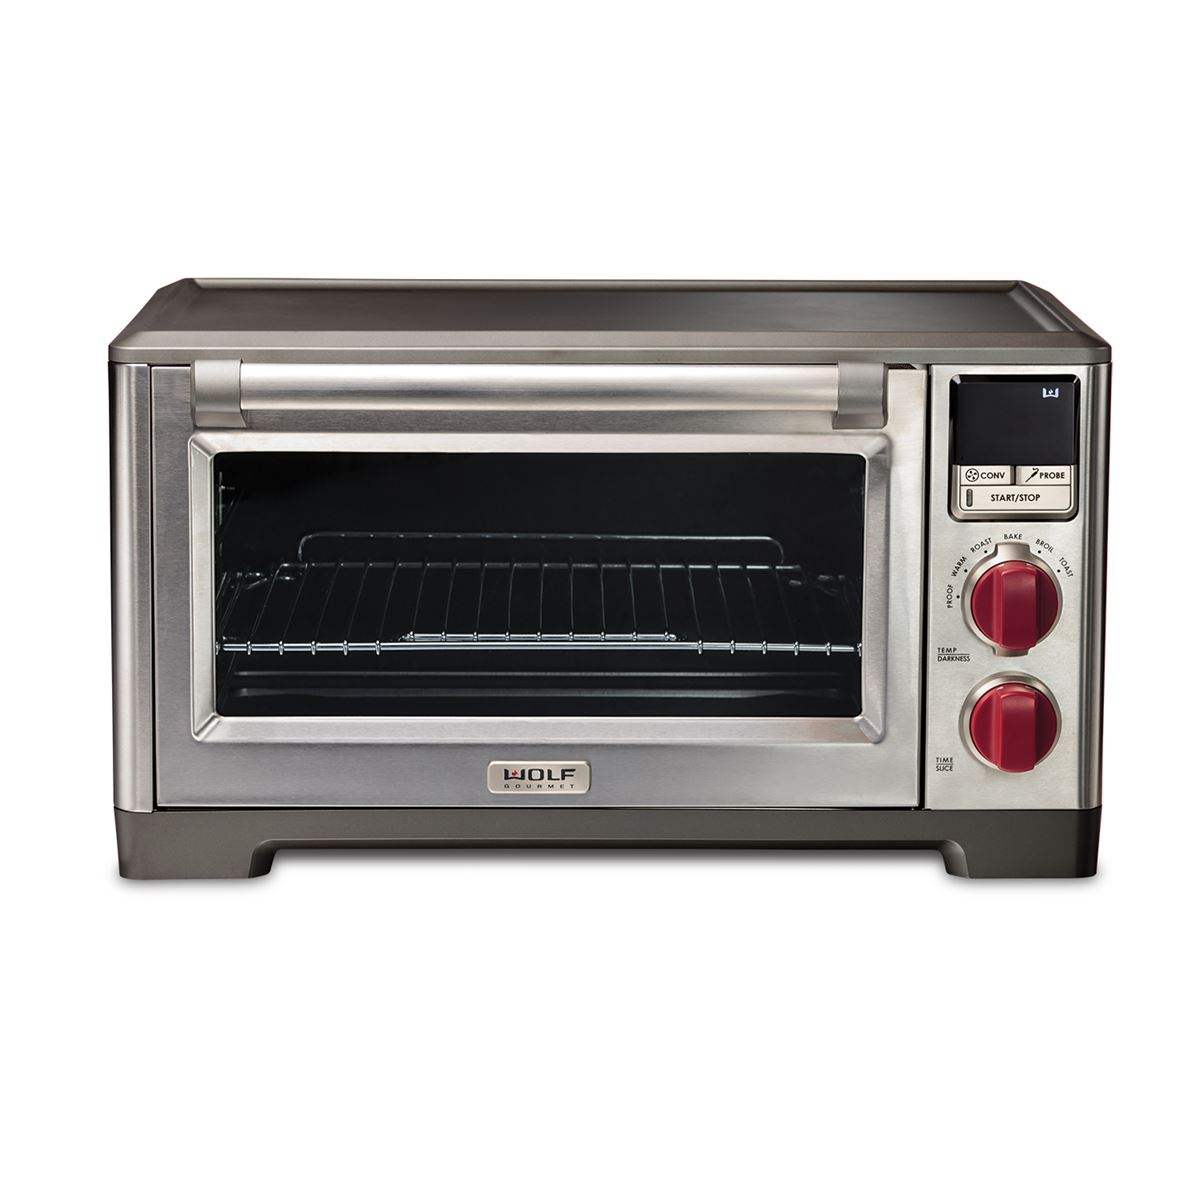 bread compact reviews best oven small cuisinart toaster mini